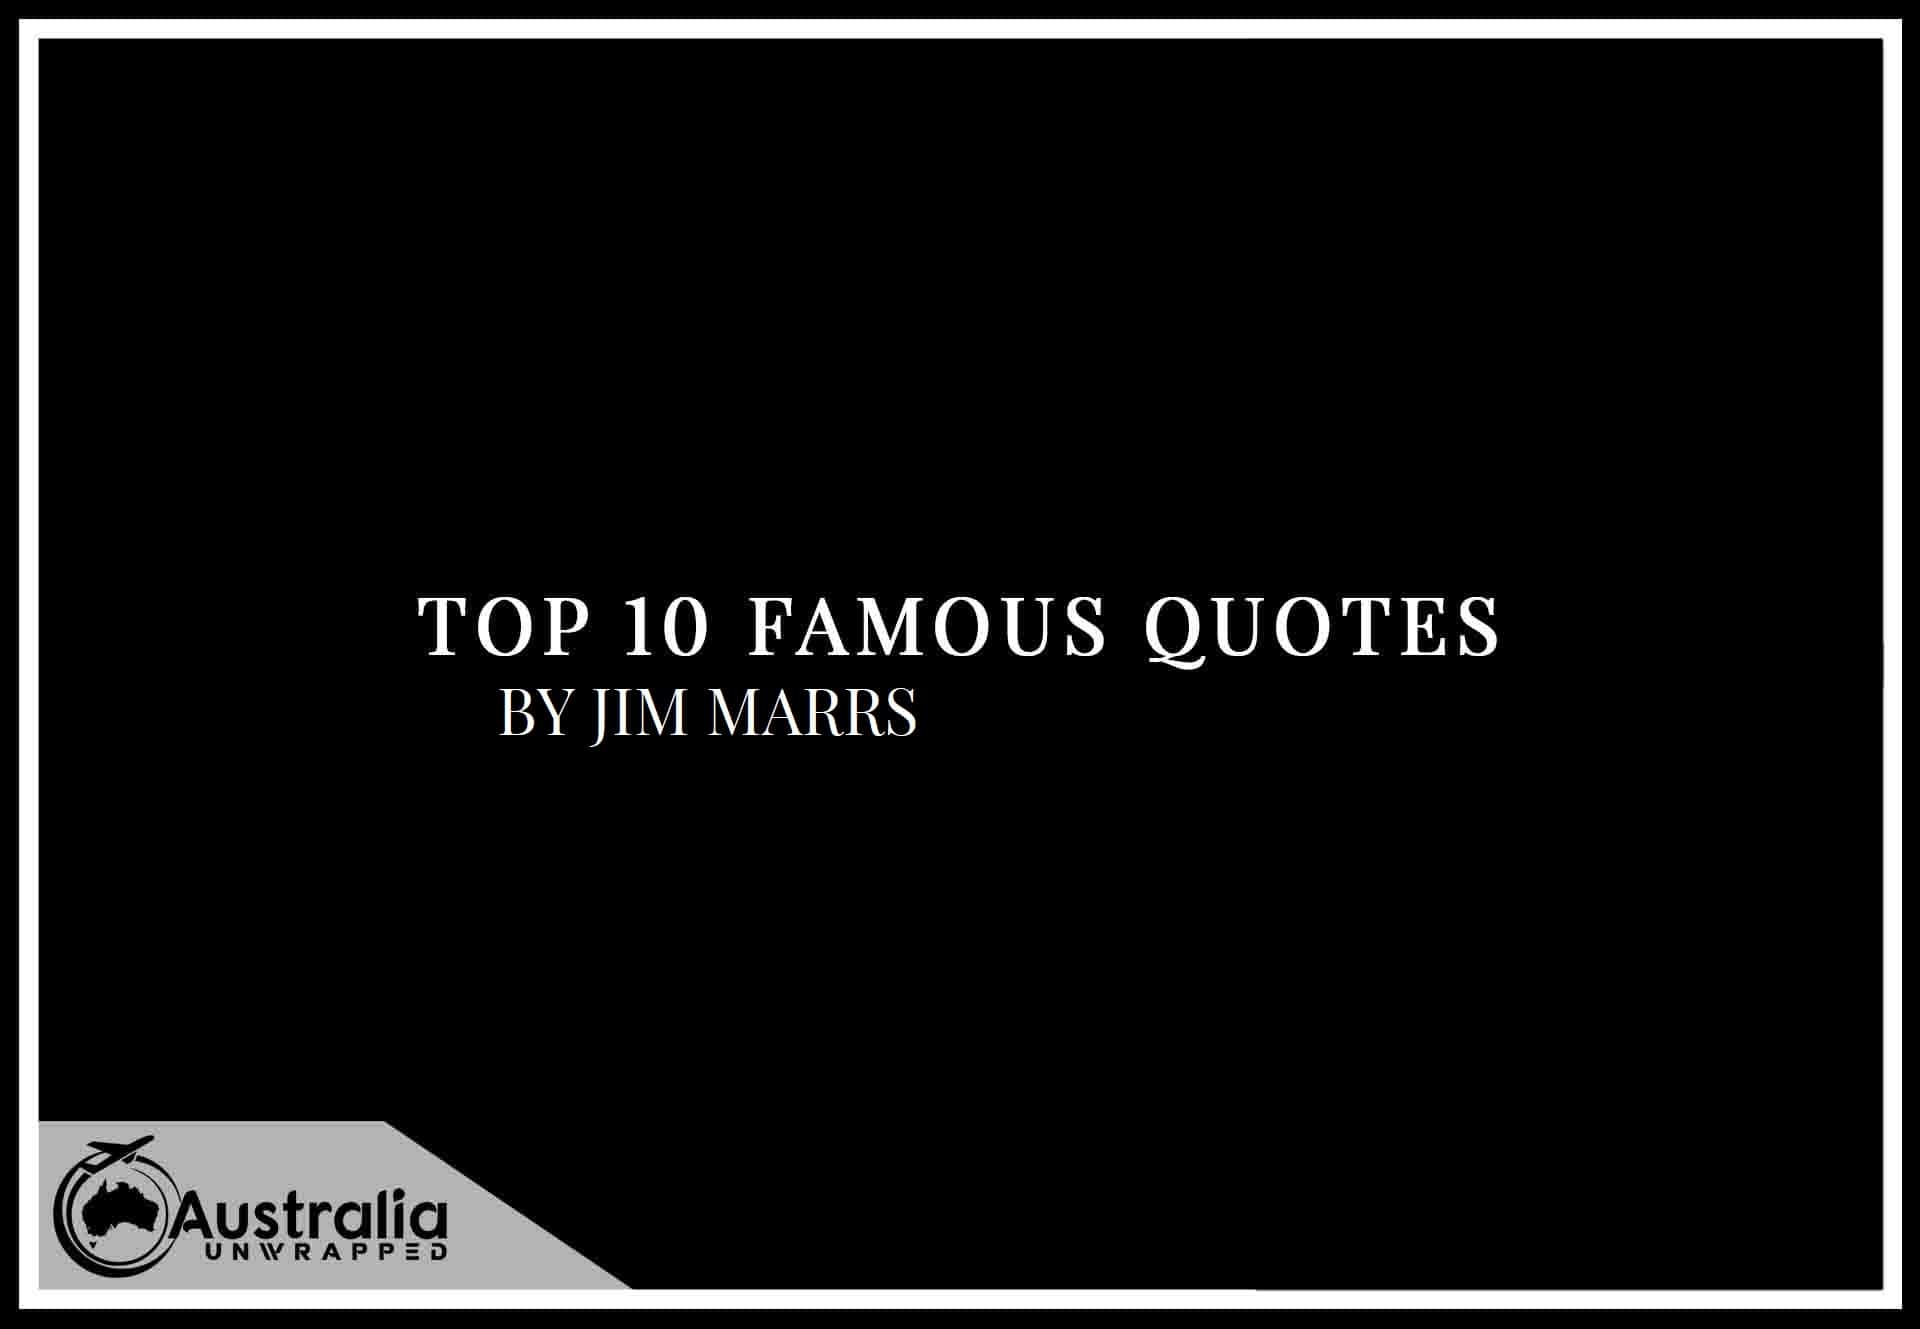 Top 10 Famous Quotes by Author Jim Marrs